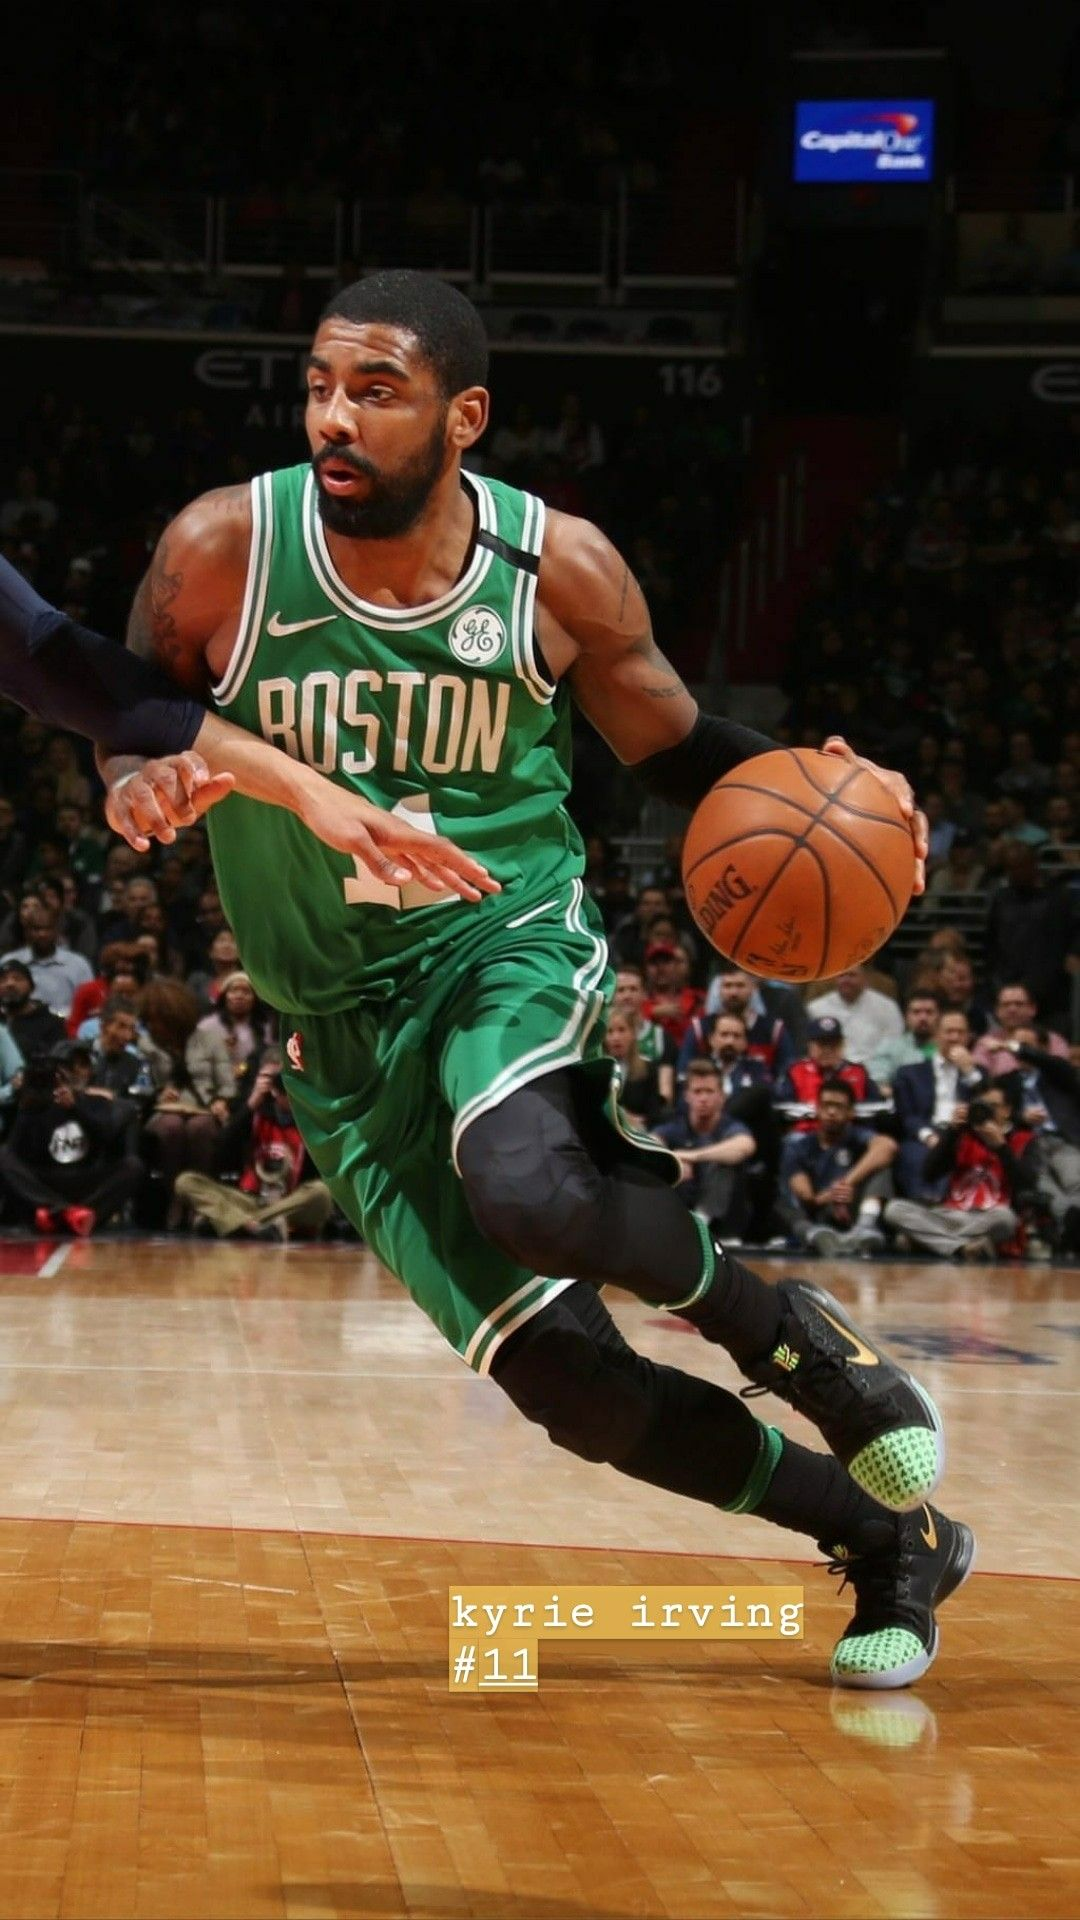 KYRIE IRVING WALLPAPER Kyrie irving, Kyrie, Basketball